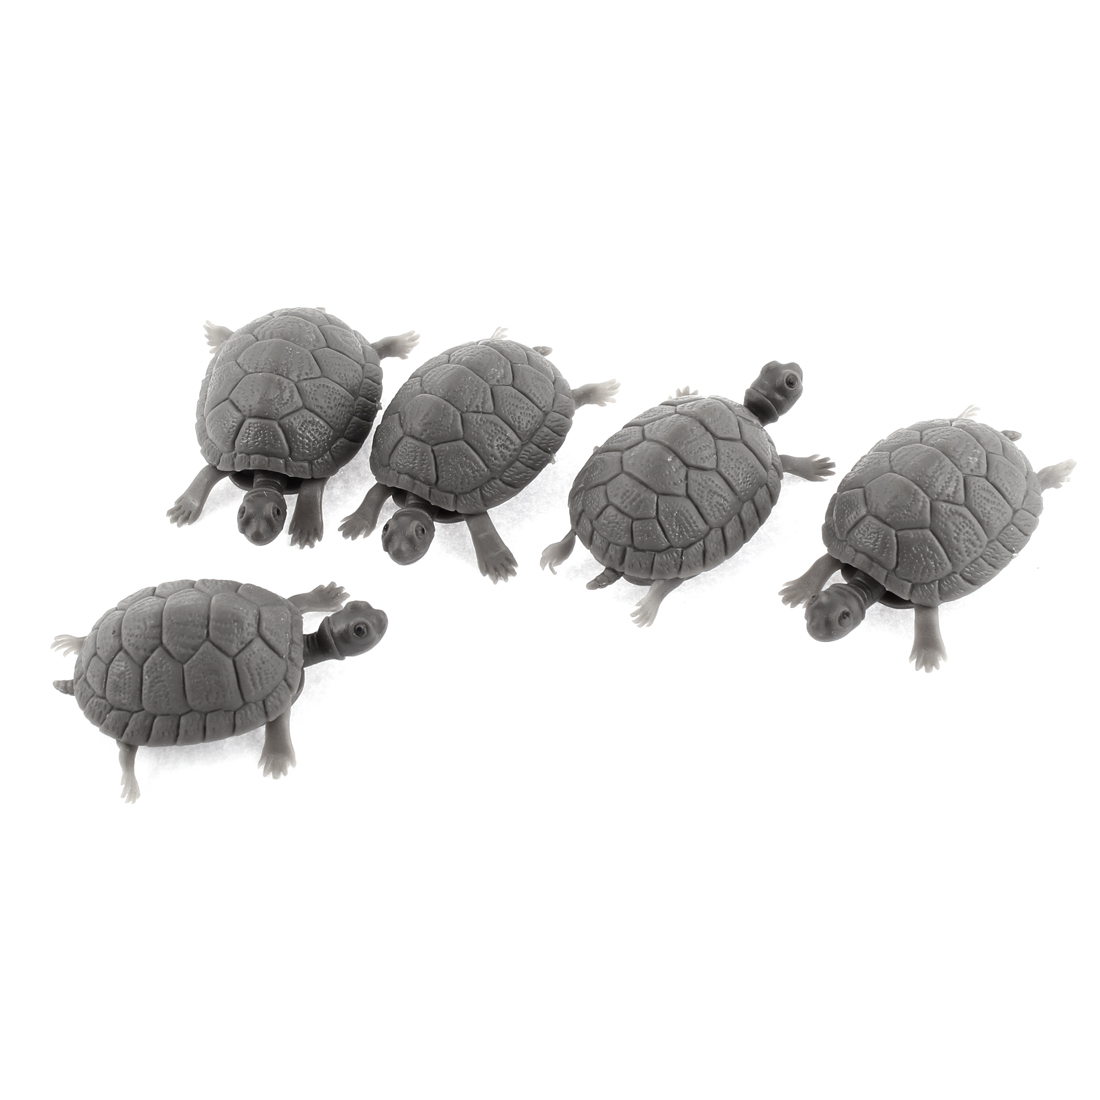 Aquarium Plastic Tortoise Decorative Ornament Fish Tank Decoration 5pcs